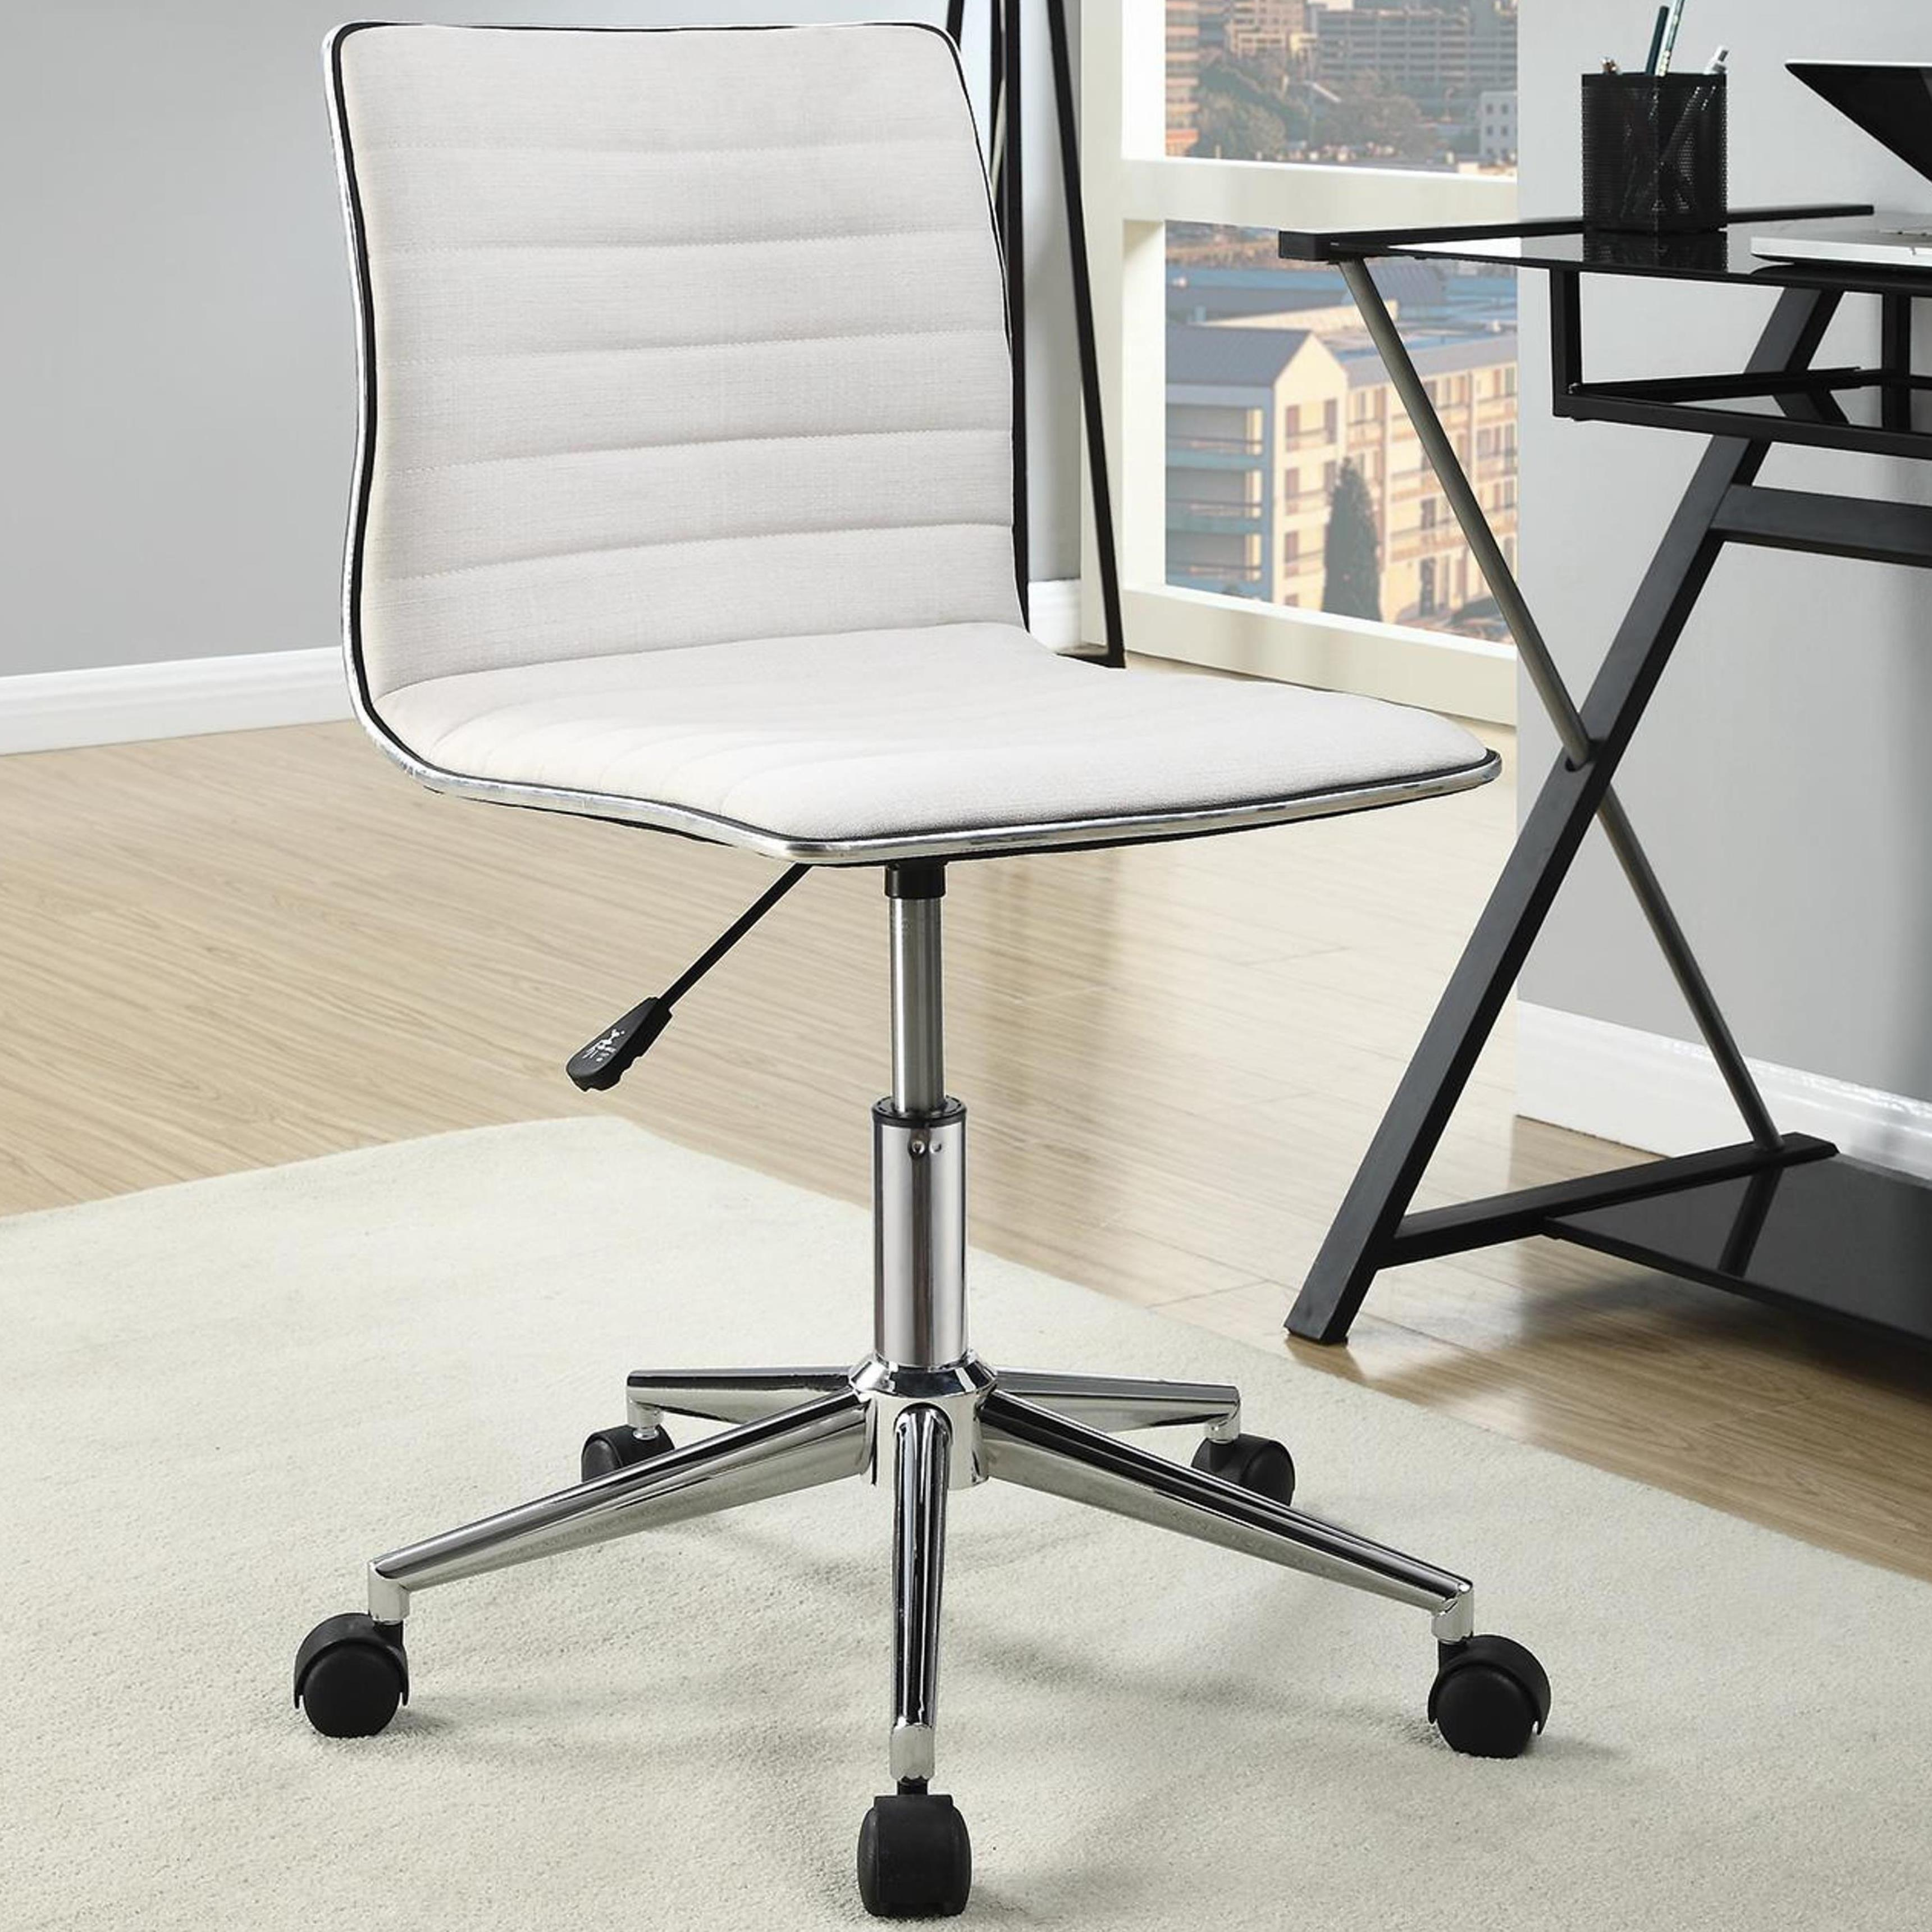 Juliana Adjule Sleek Cream Swivel Office Conference Chair With Chrome Base Free Shipping Today 11104226